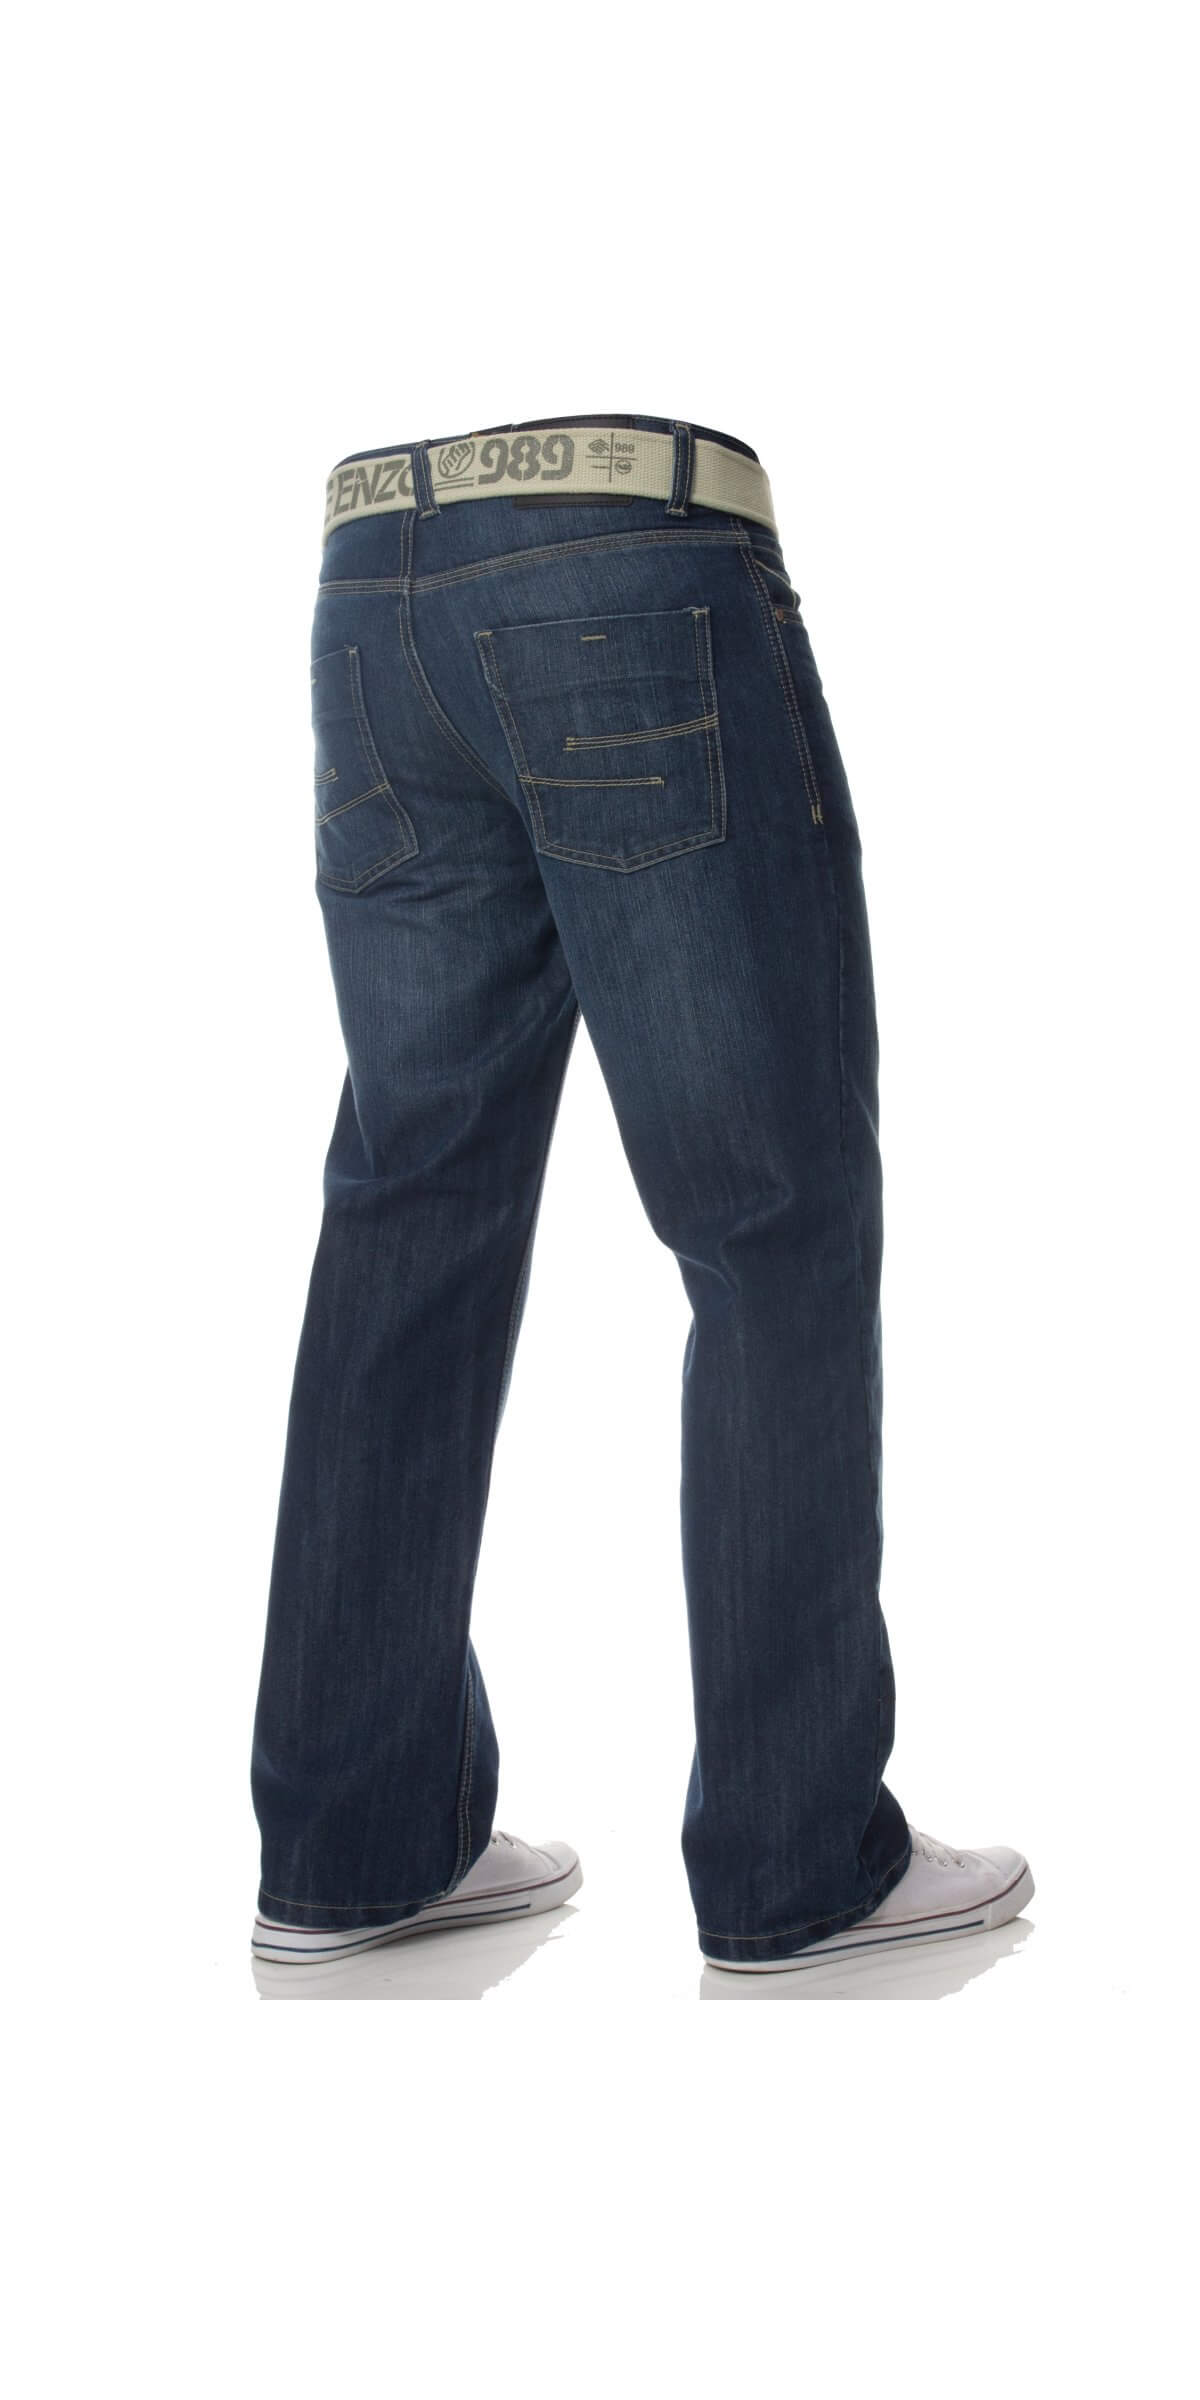 Mens Mid Wash Jeans with Belt EZ15 | Enzo Designer Menswear